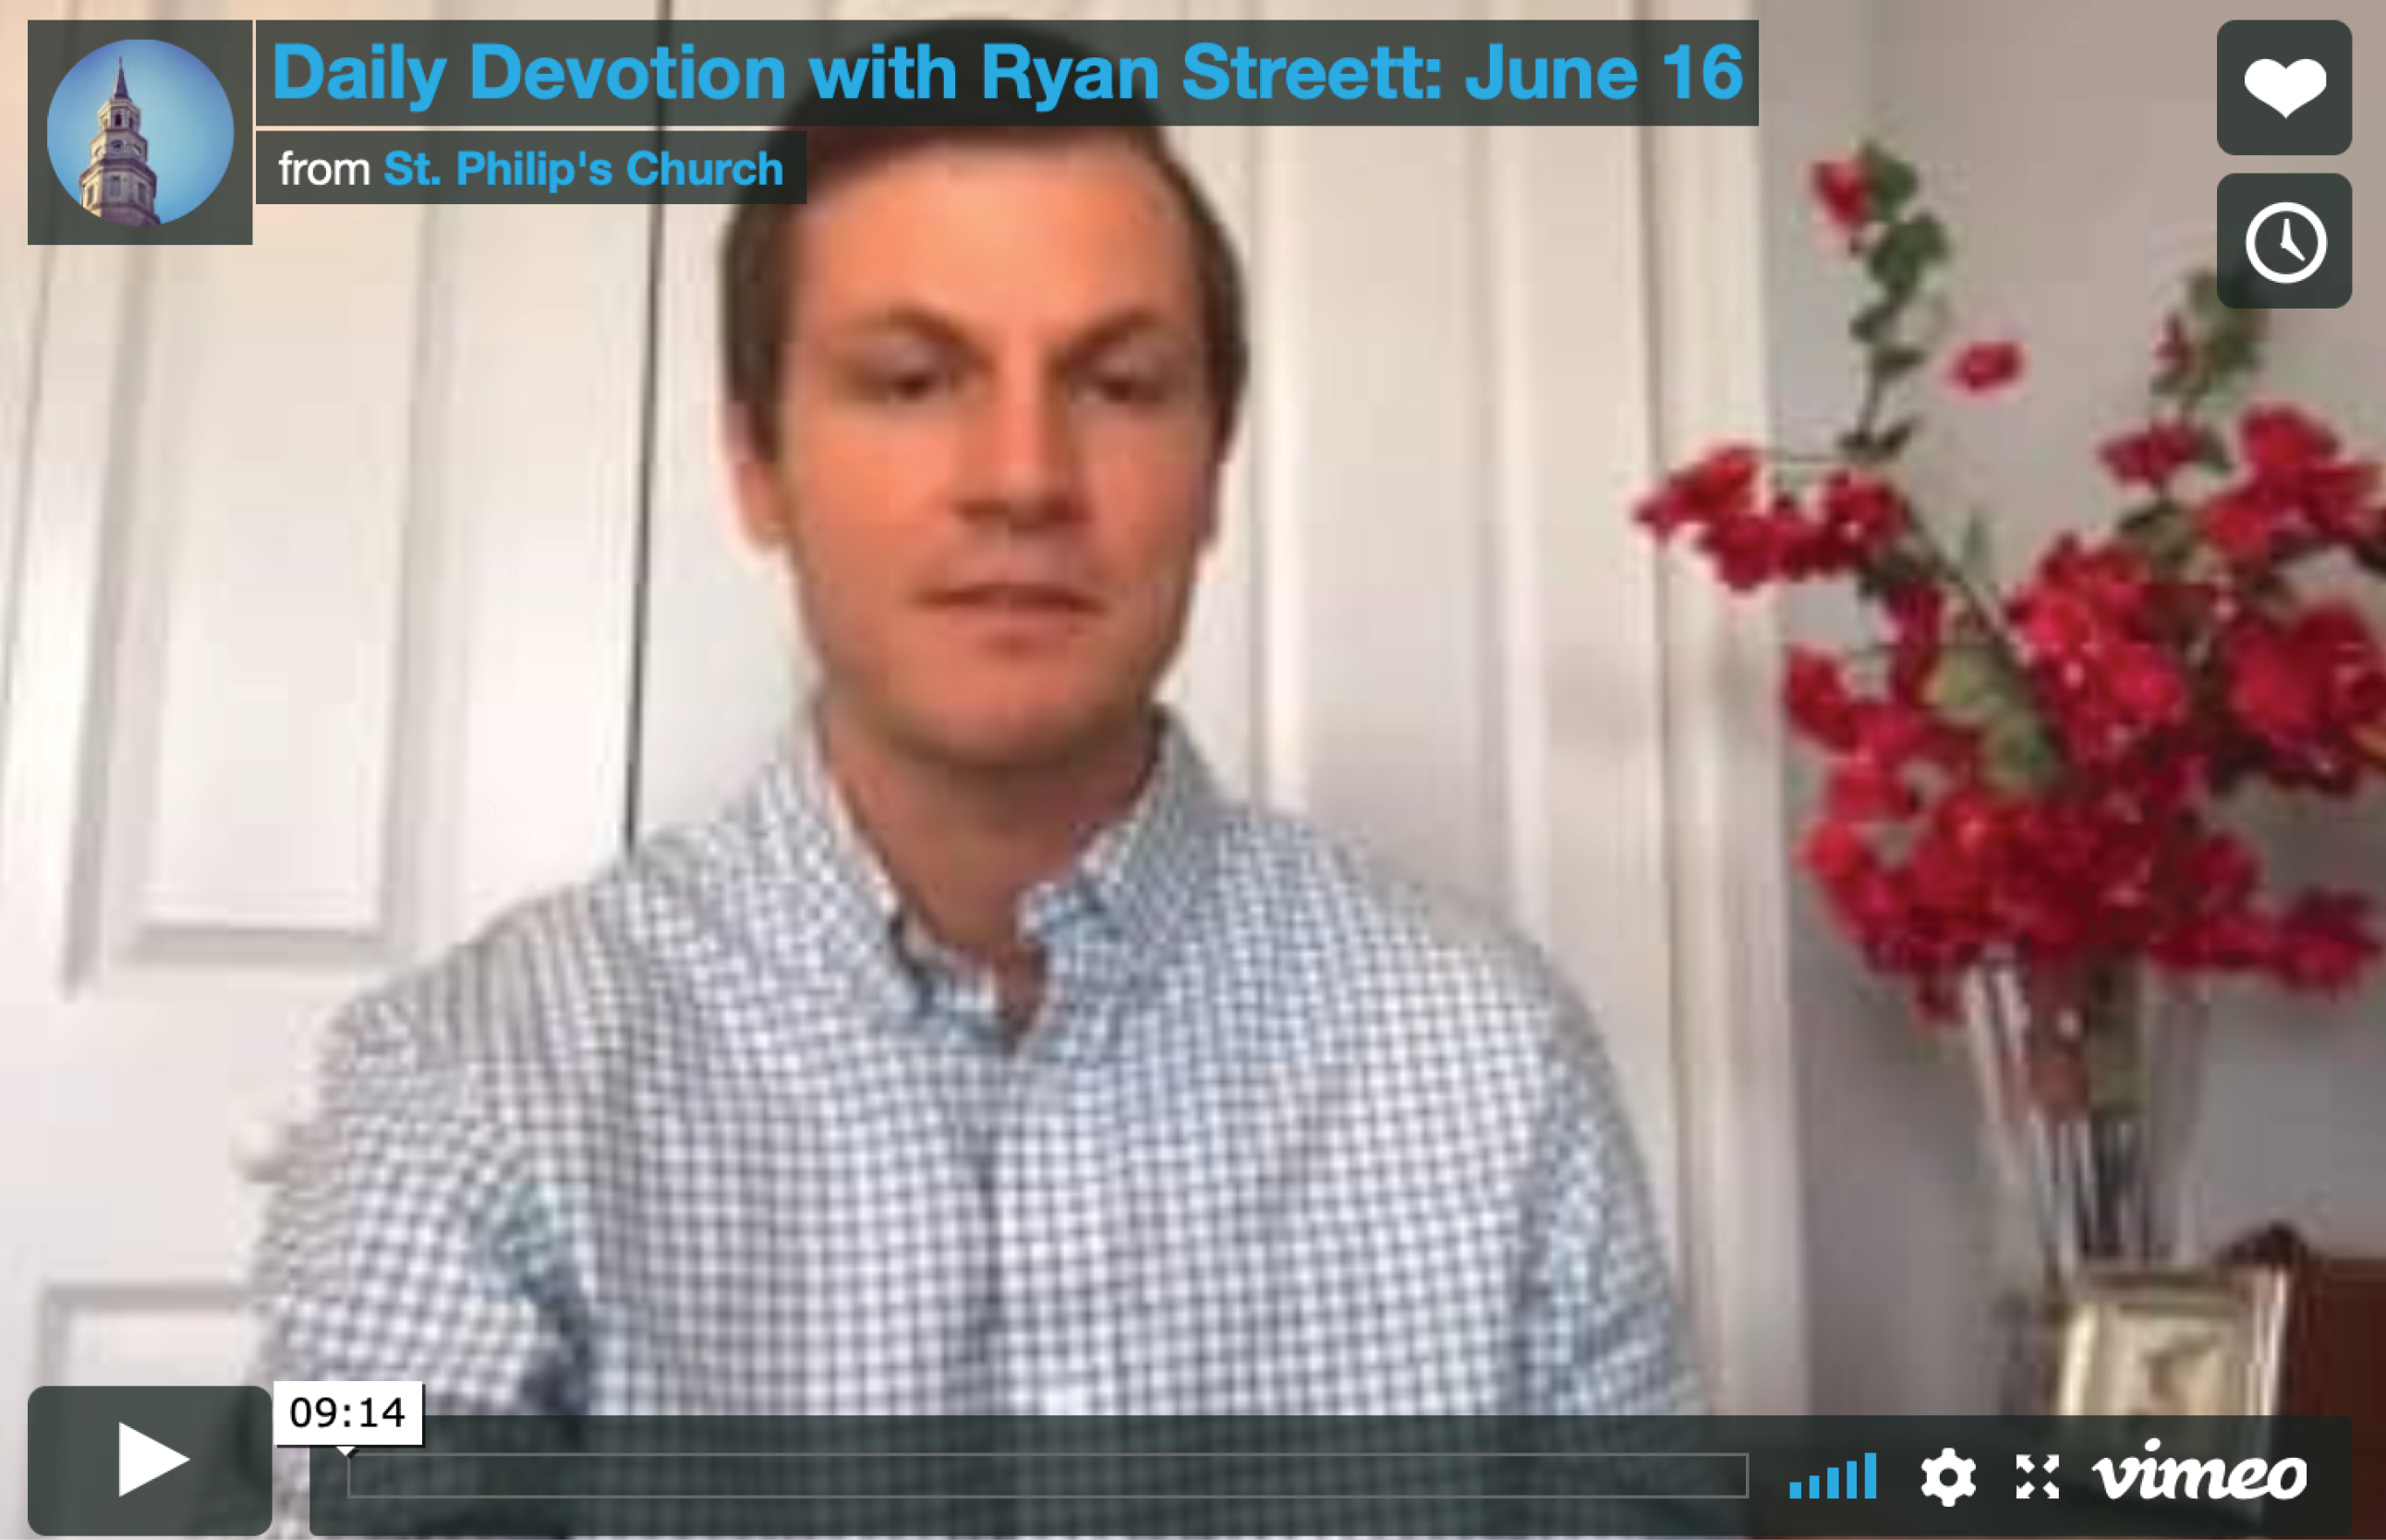 News--Streett Devotion June 16